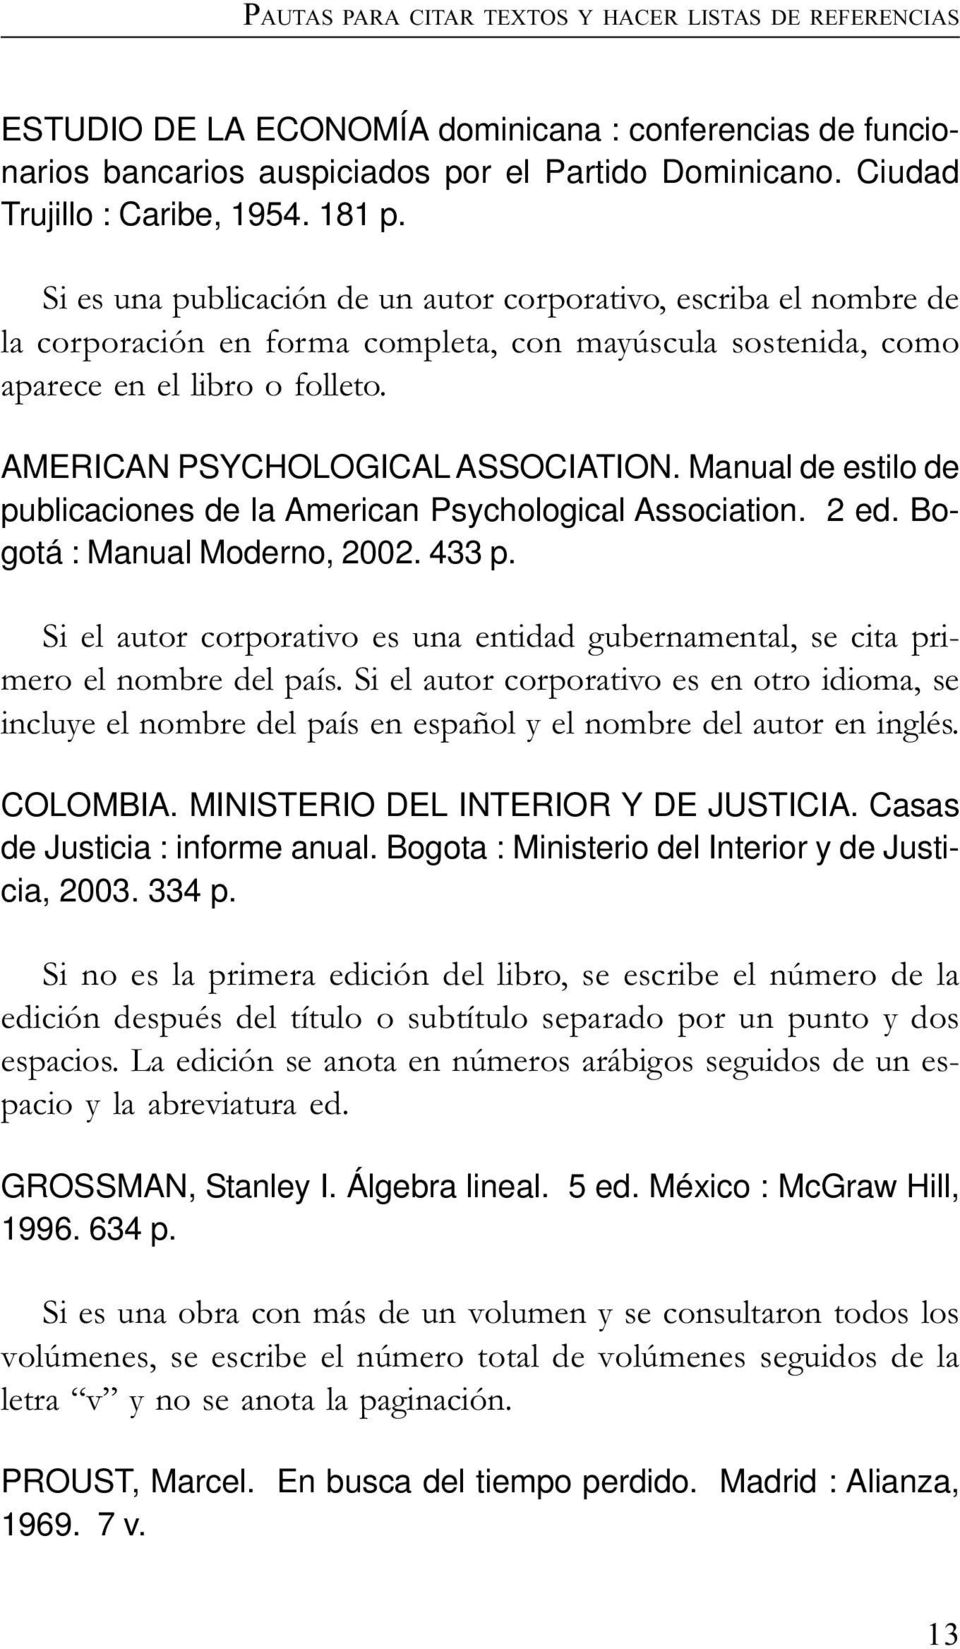 AMERICAN PSYCHOLOGICAL ASSOCIATION. Manual de estilo de publicaciones de la American Psychological Association. 2 ed. Bogotá : Manual Moderno, 2002. 433 p.